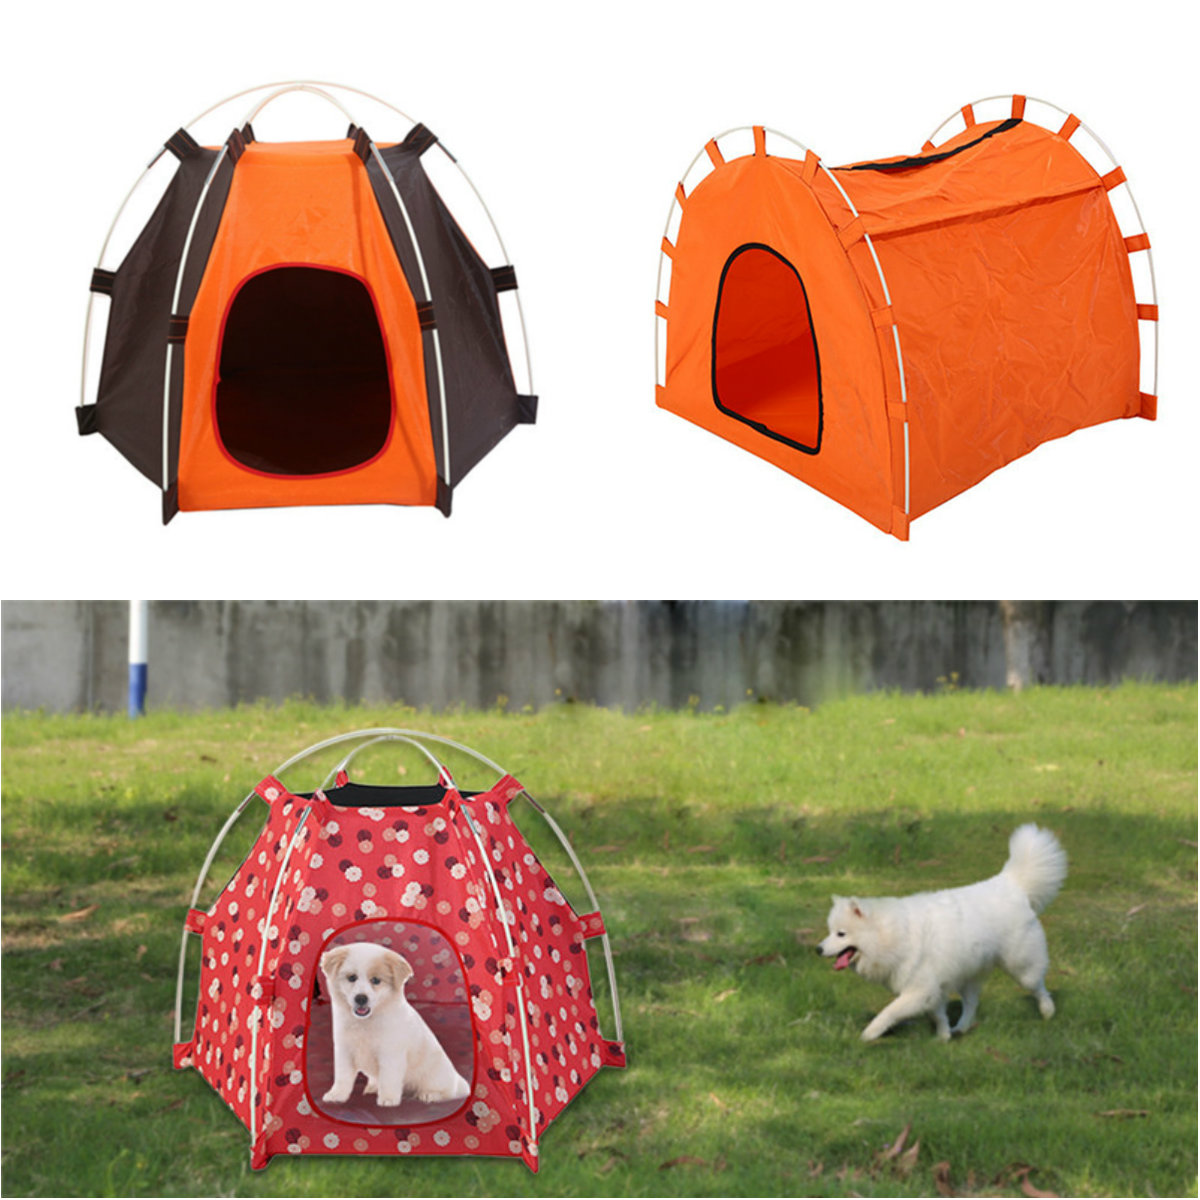 Portable Folding Dog House for Pet Kennel Soft Cat Puppy Outdoor Tent Waterproof  sc 1 st  eBay & Portable Folding Dog House for Pet Kennel Soft Cat Puppy Outdoor ...